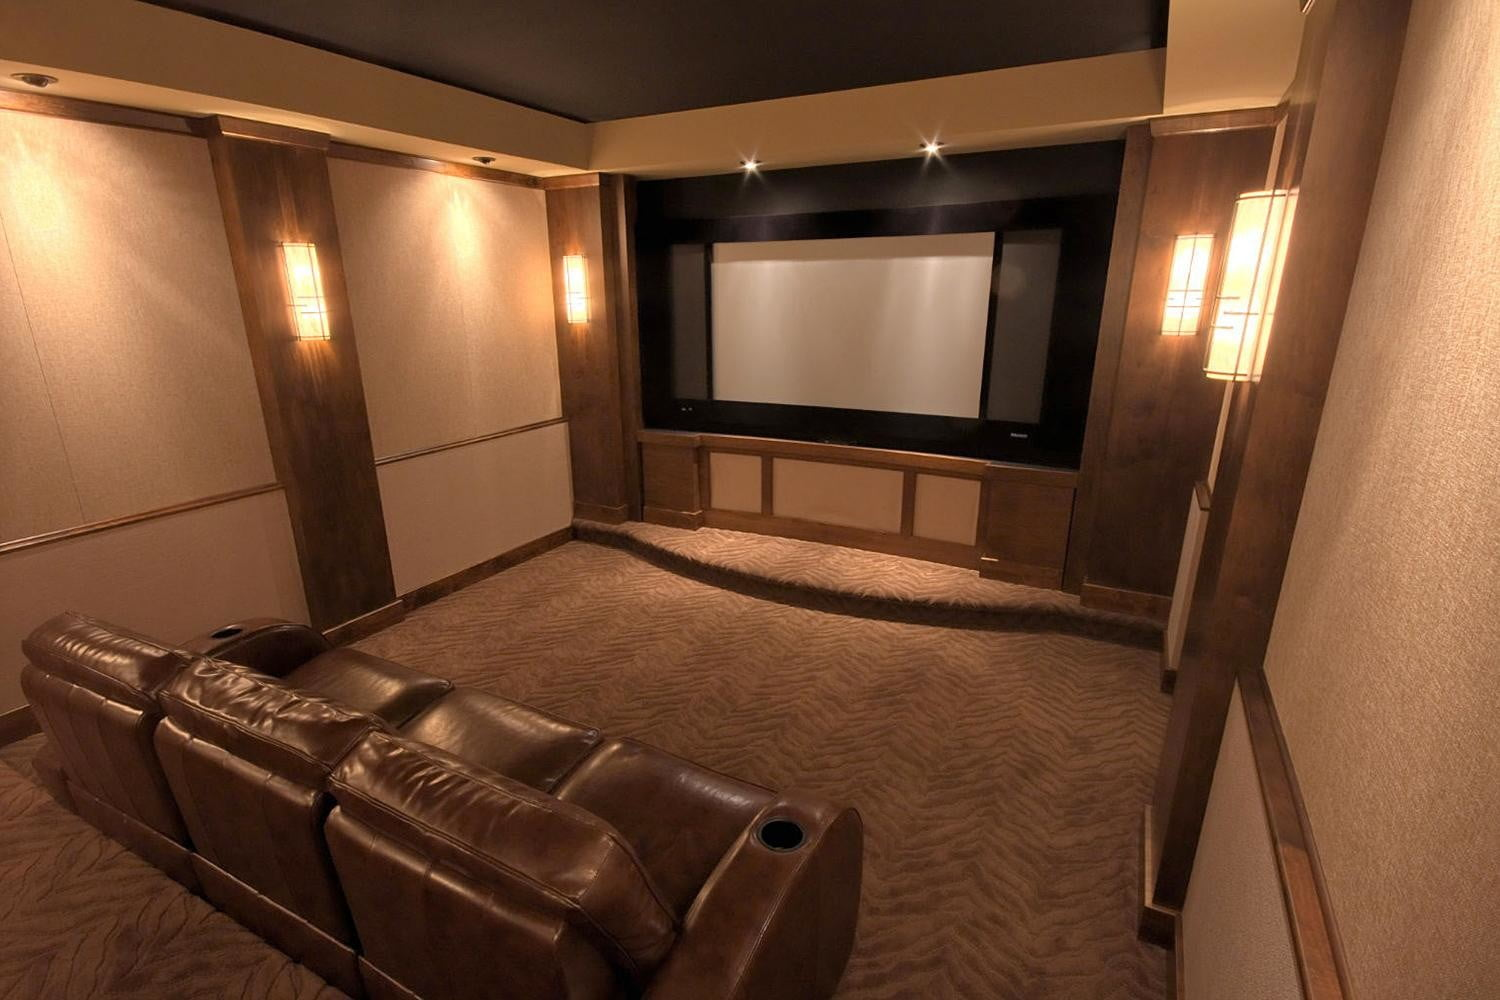 How To Choose A Projection Screen Digital Trends Wiring Home Theater Tv